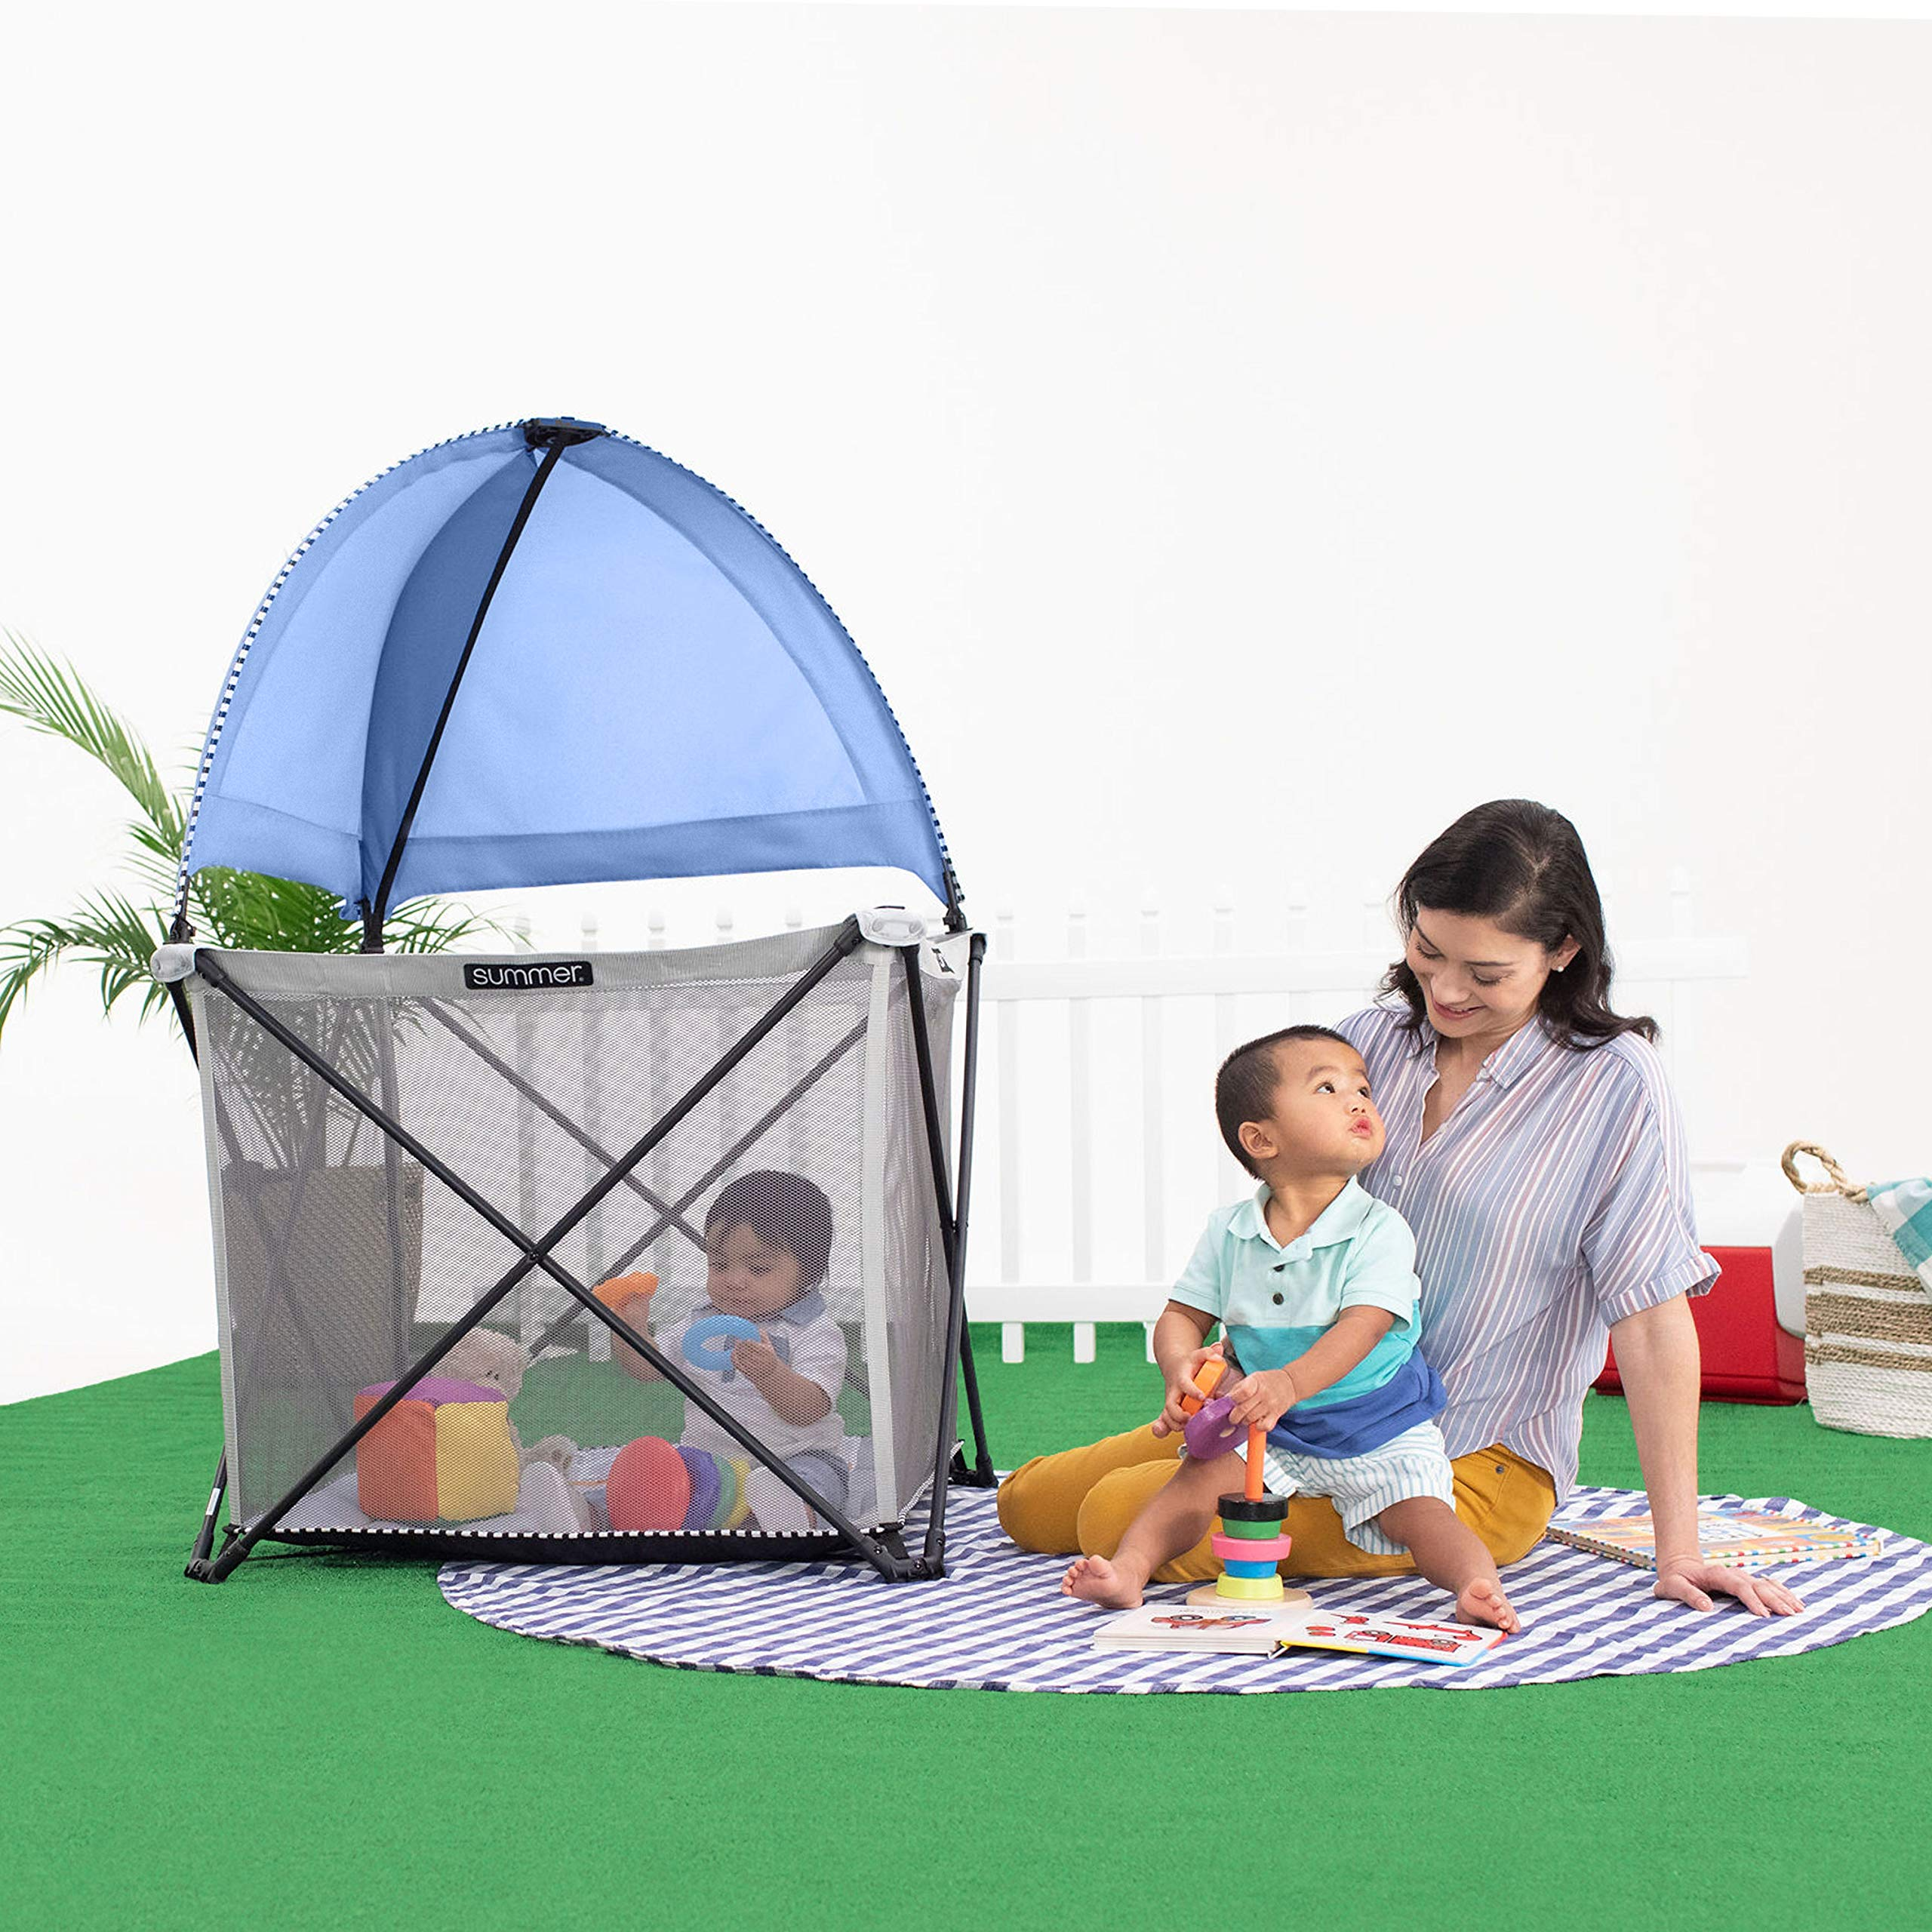 Summer Infant Pop 'n Play SE Cube Playard (Sweetlife Edition), Blue Raspberry, 4-Sided by Summer Infant (Image #9)